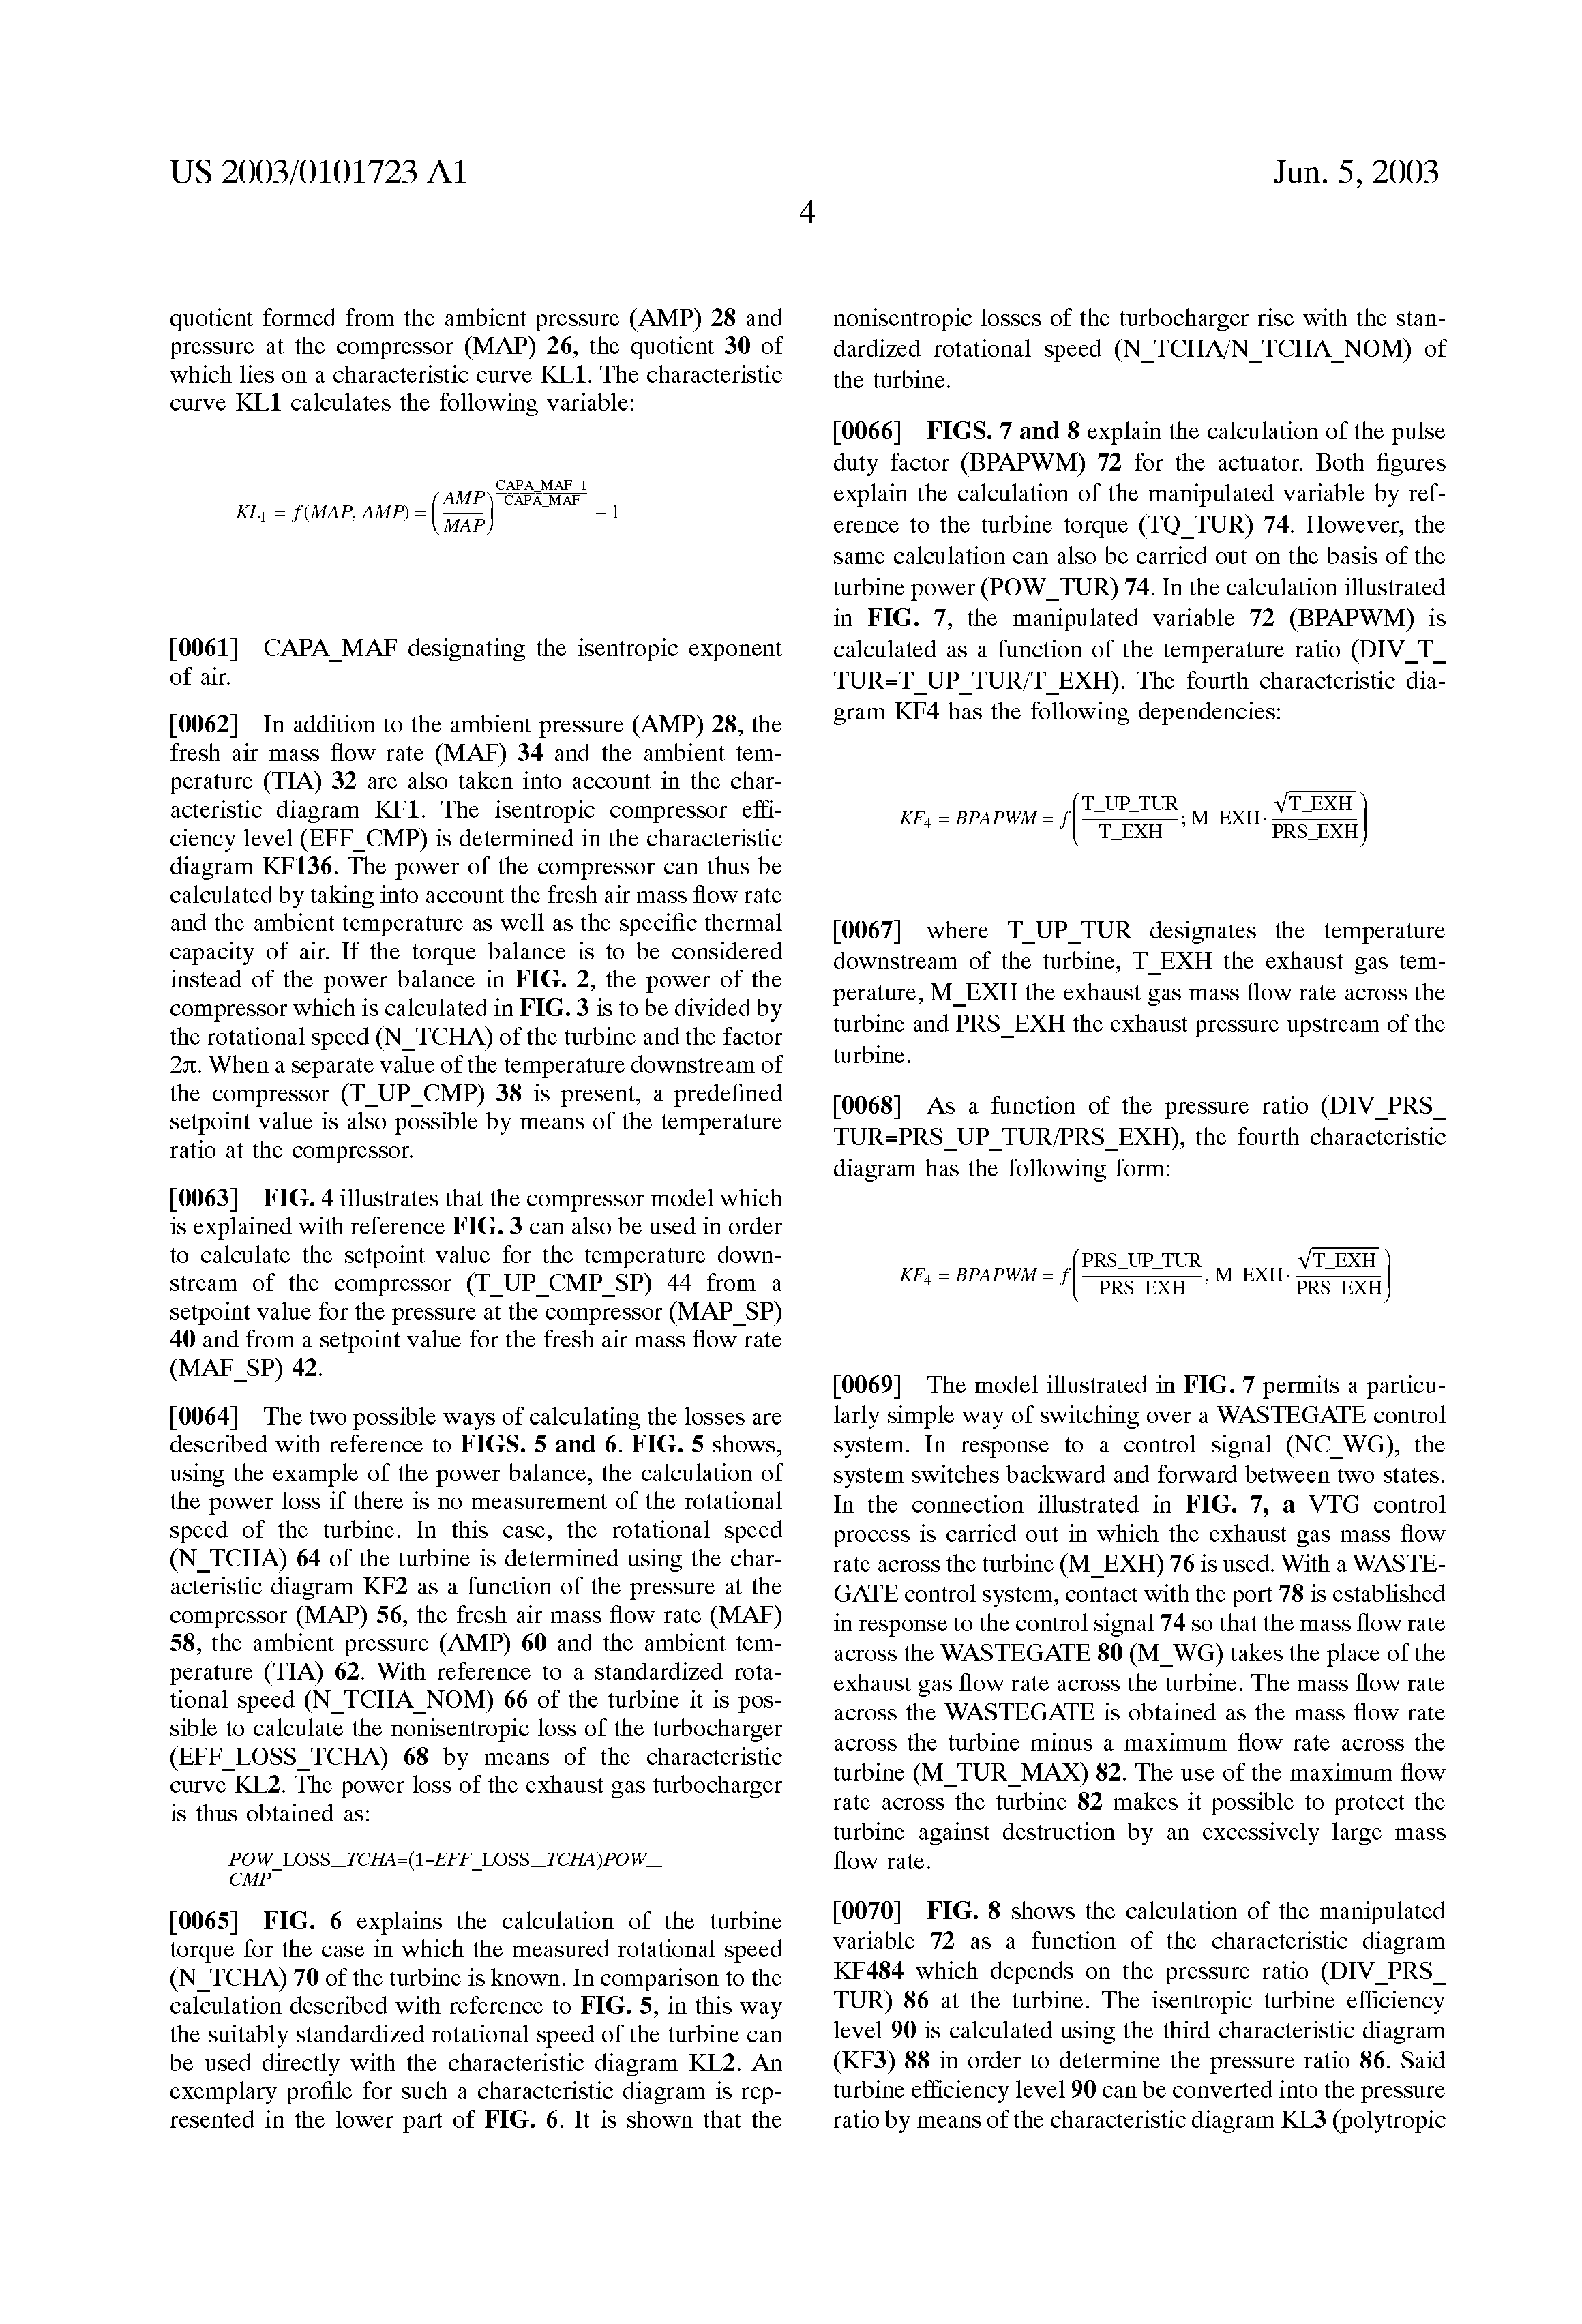 US 2003/0101723 A1 - Method For Controlling A Charge